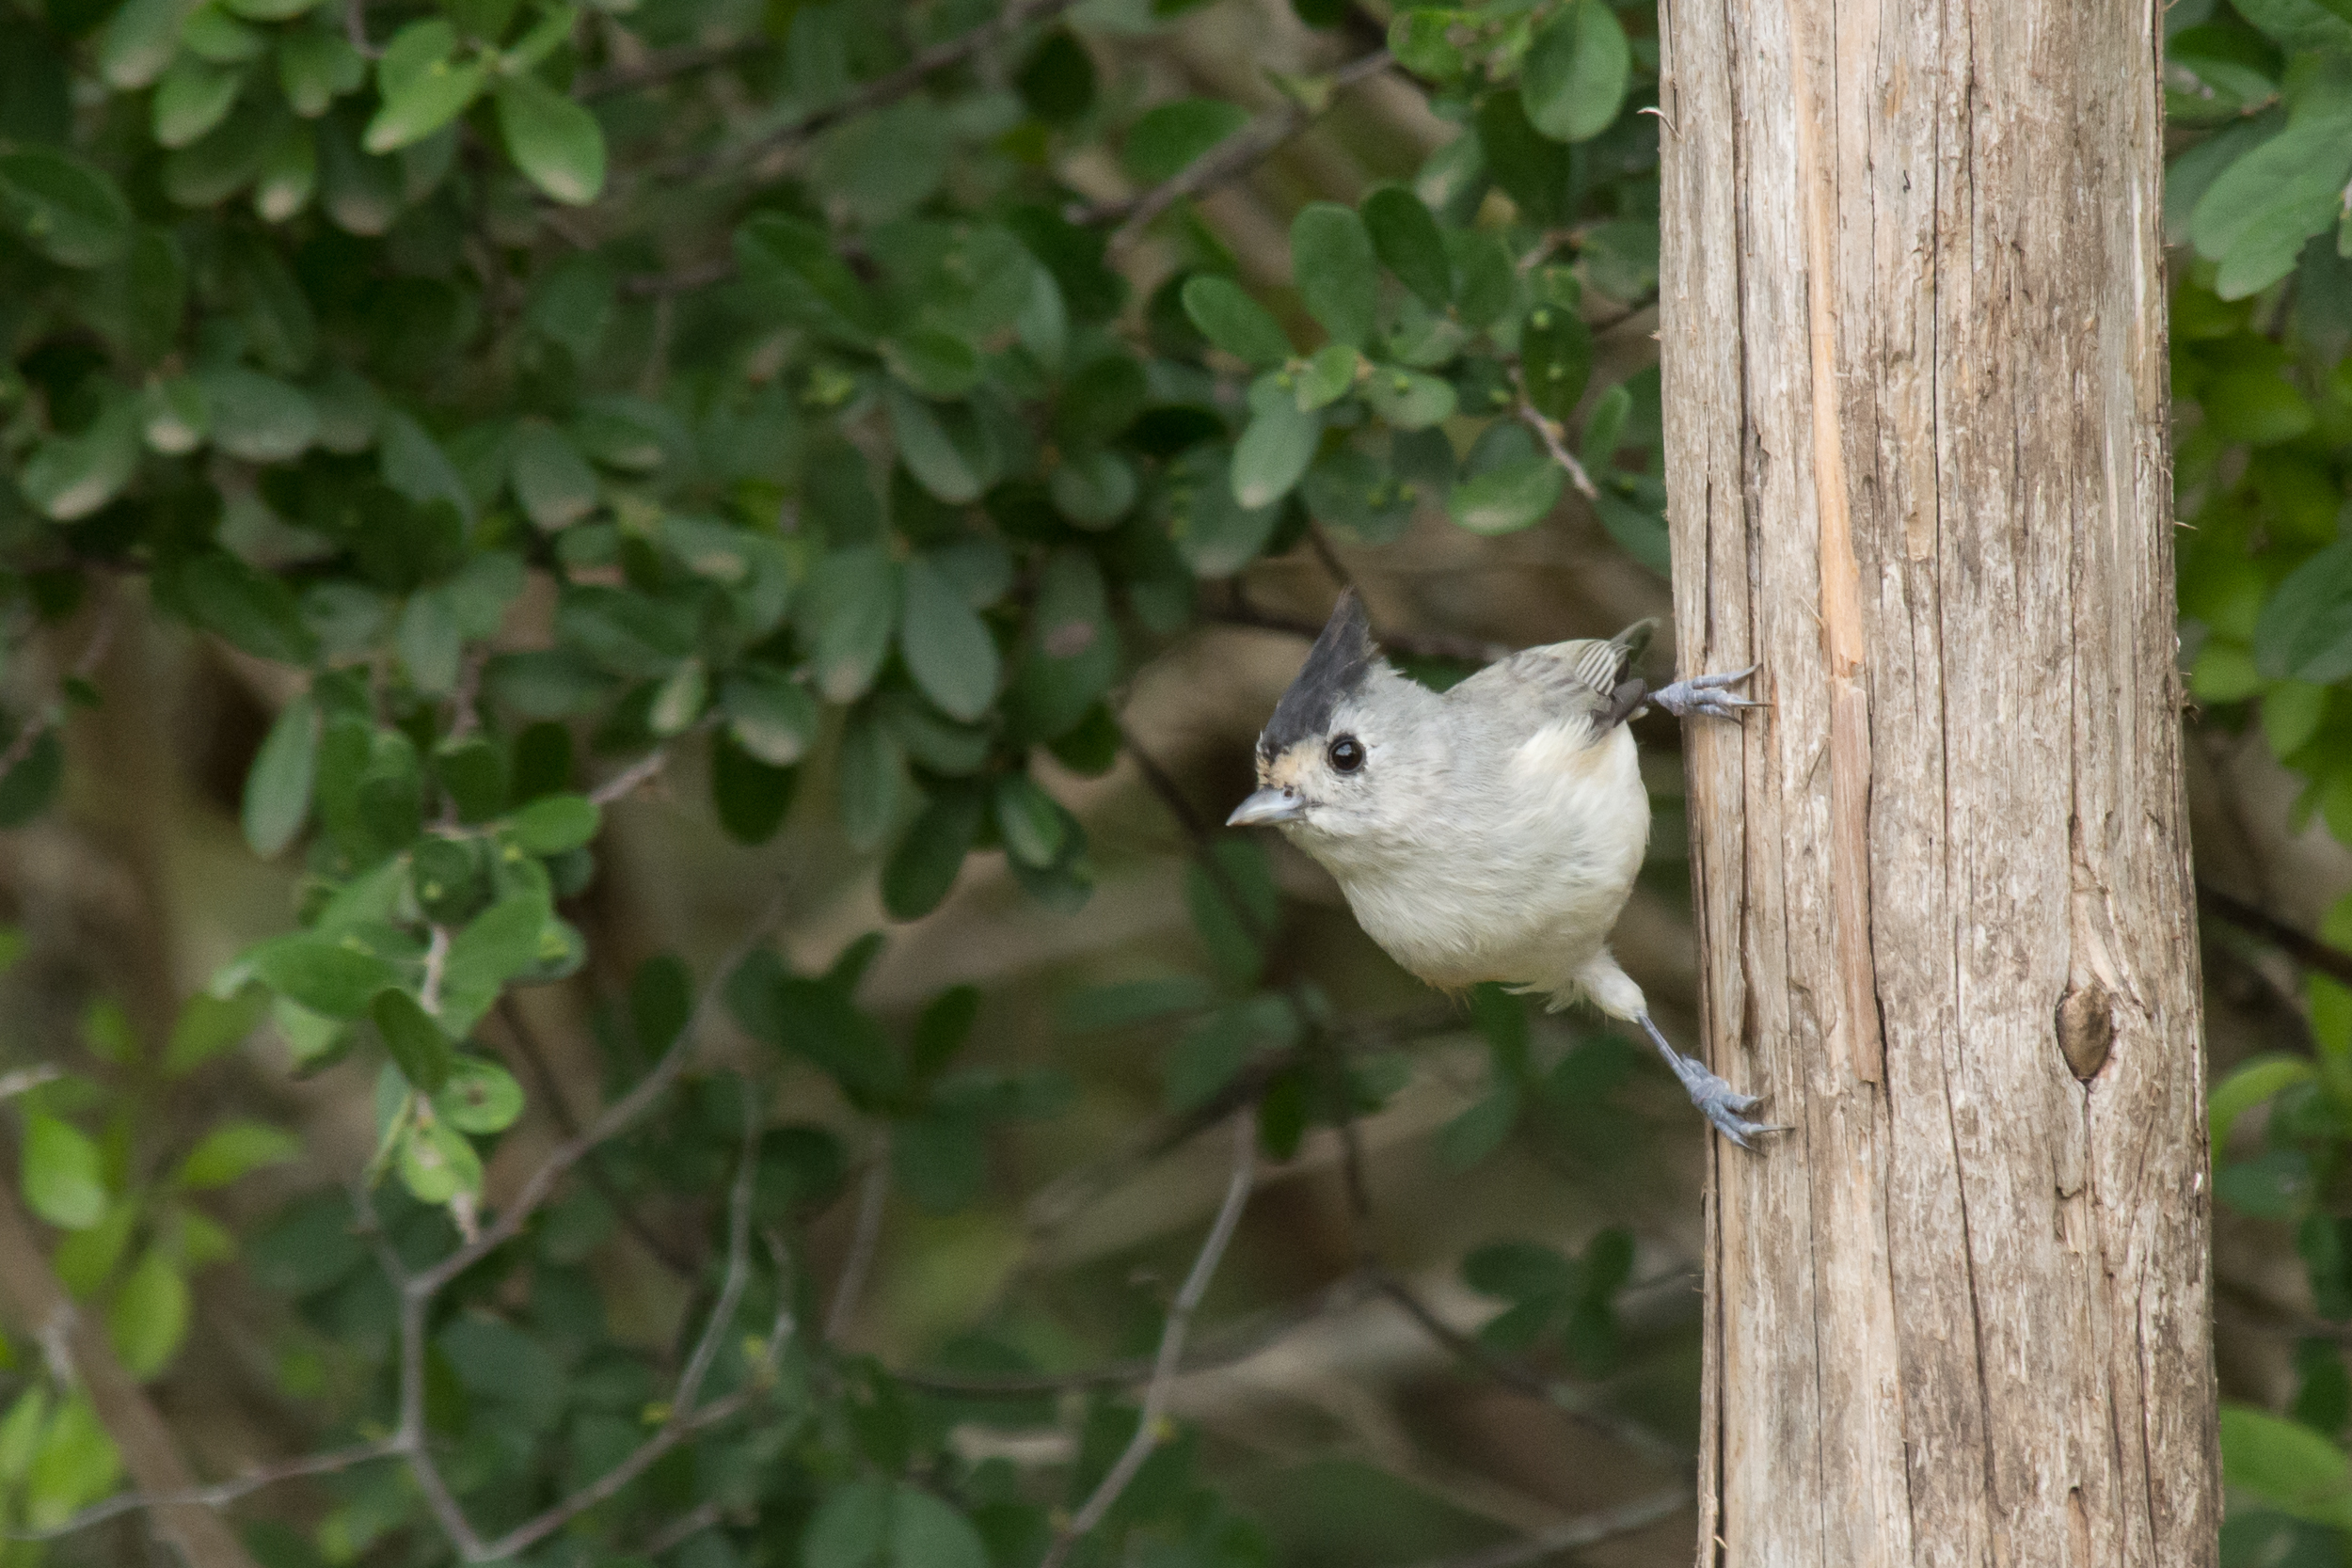 Species: Black-crested Titmouse Photo Credit: Alyssia Church Date: September 2018 Location: Warbler Woods Bird Sanctuary